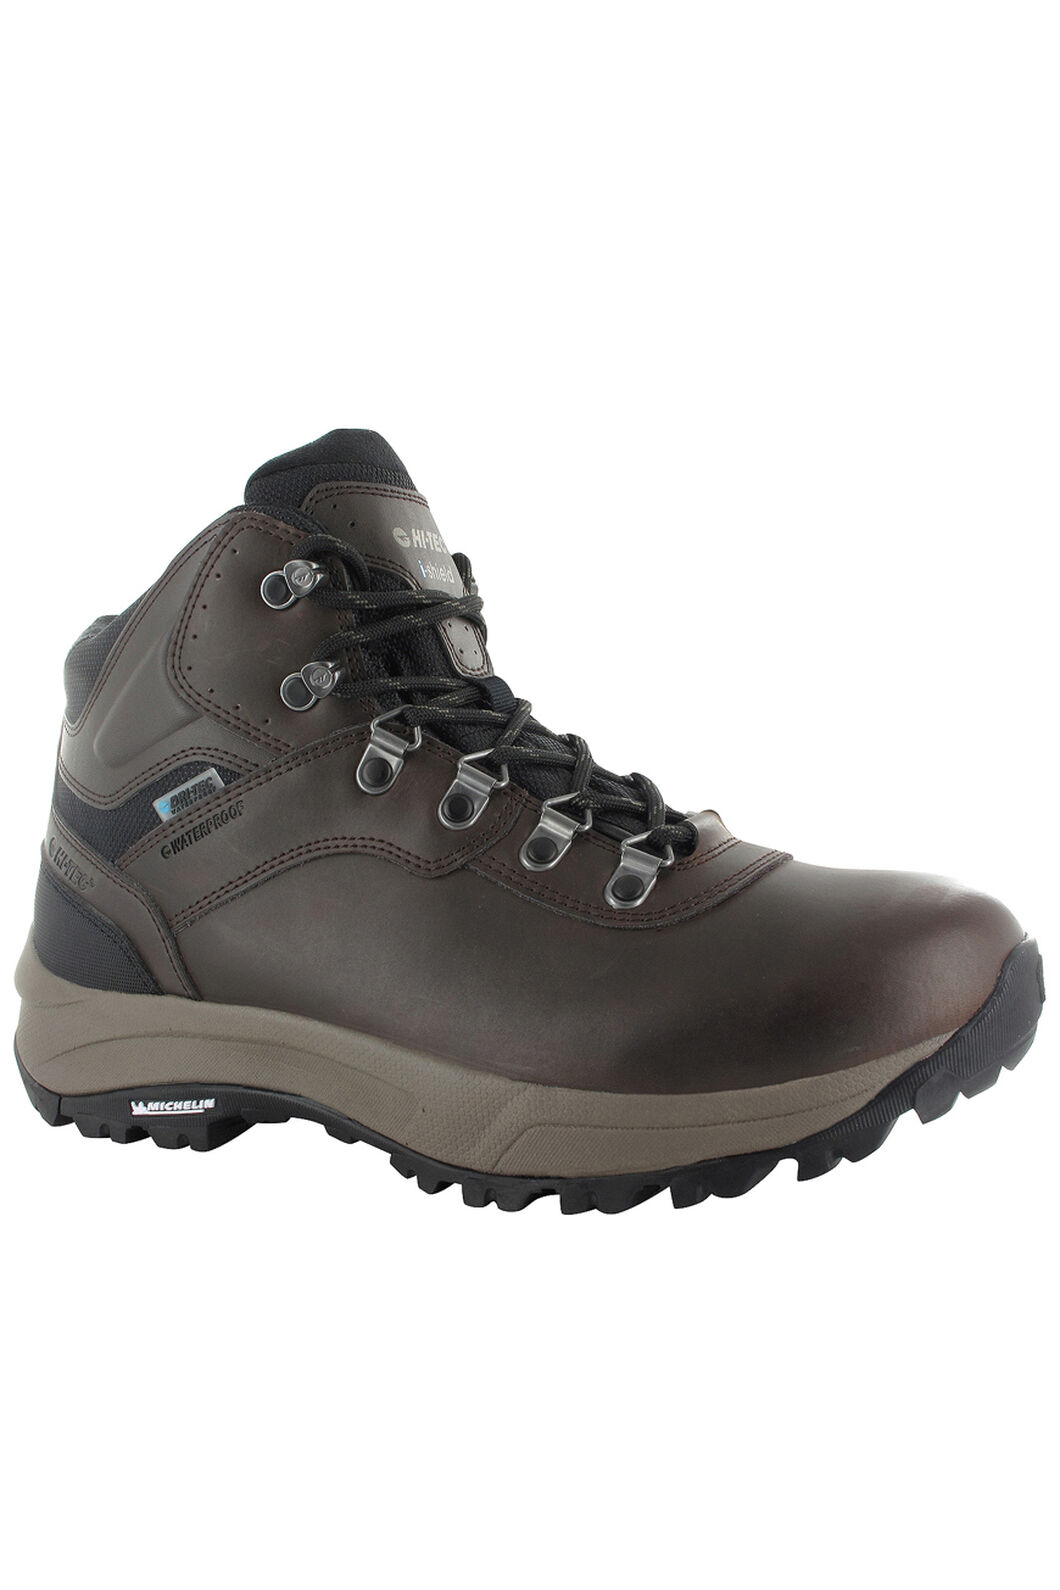 e4b7e71248f3c8 Hi-Tec Men's Altitude VI Hiking Shoes, Dark Chocolate, ...